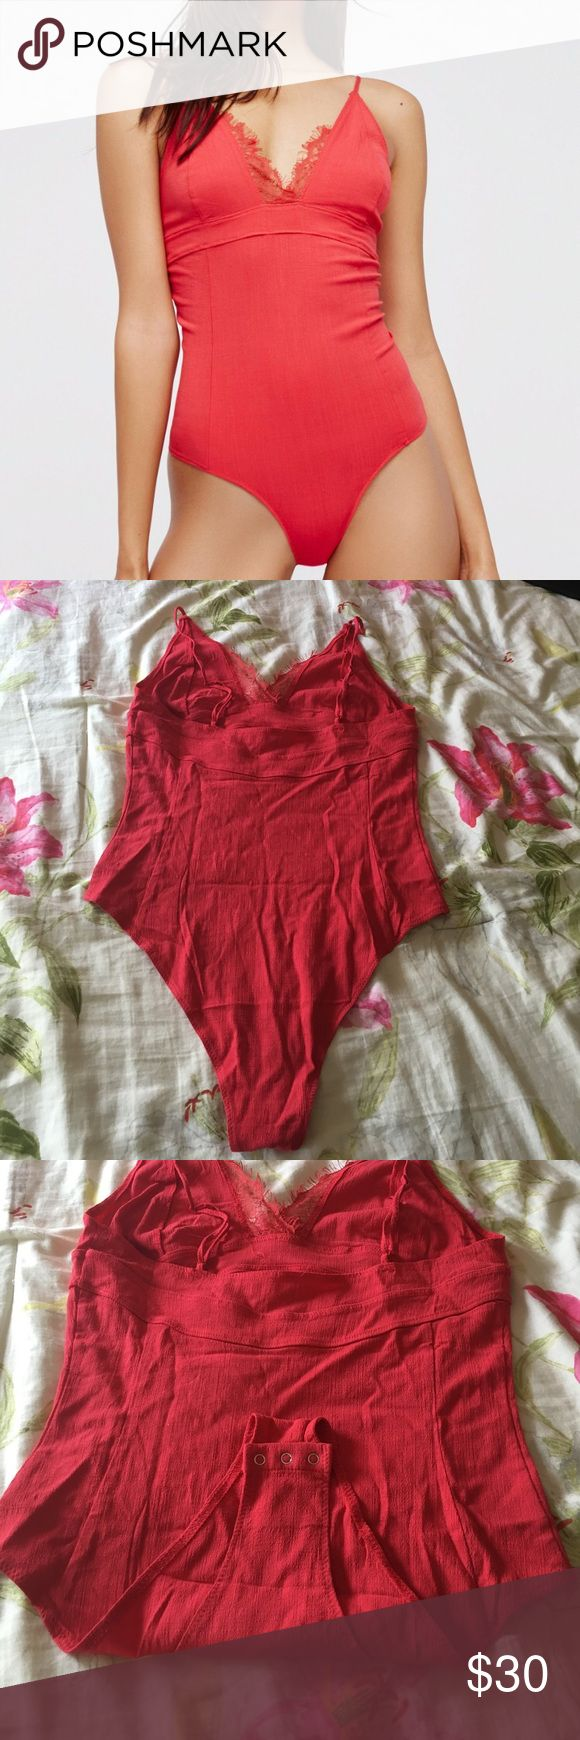 Free People Bodysuit Free People Poppy Bodysuit. Size Medium. Brand new with tags (NWT) Free People Tops